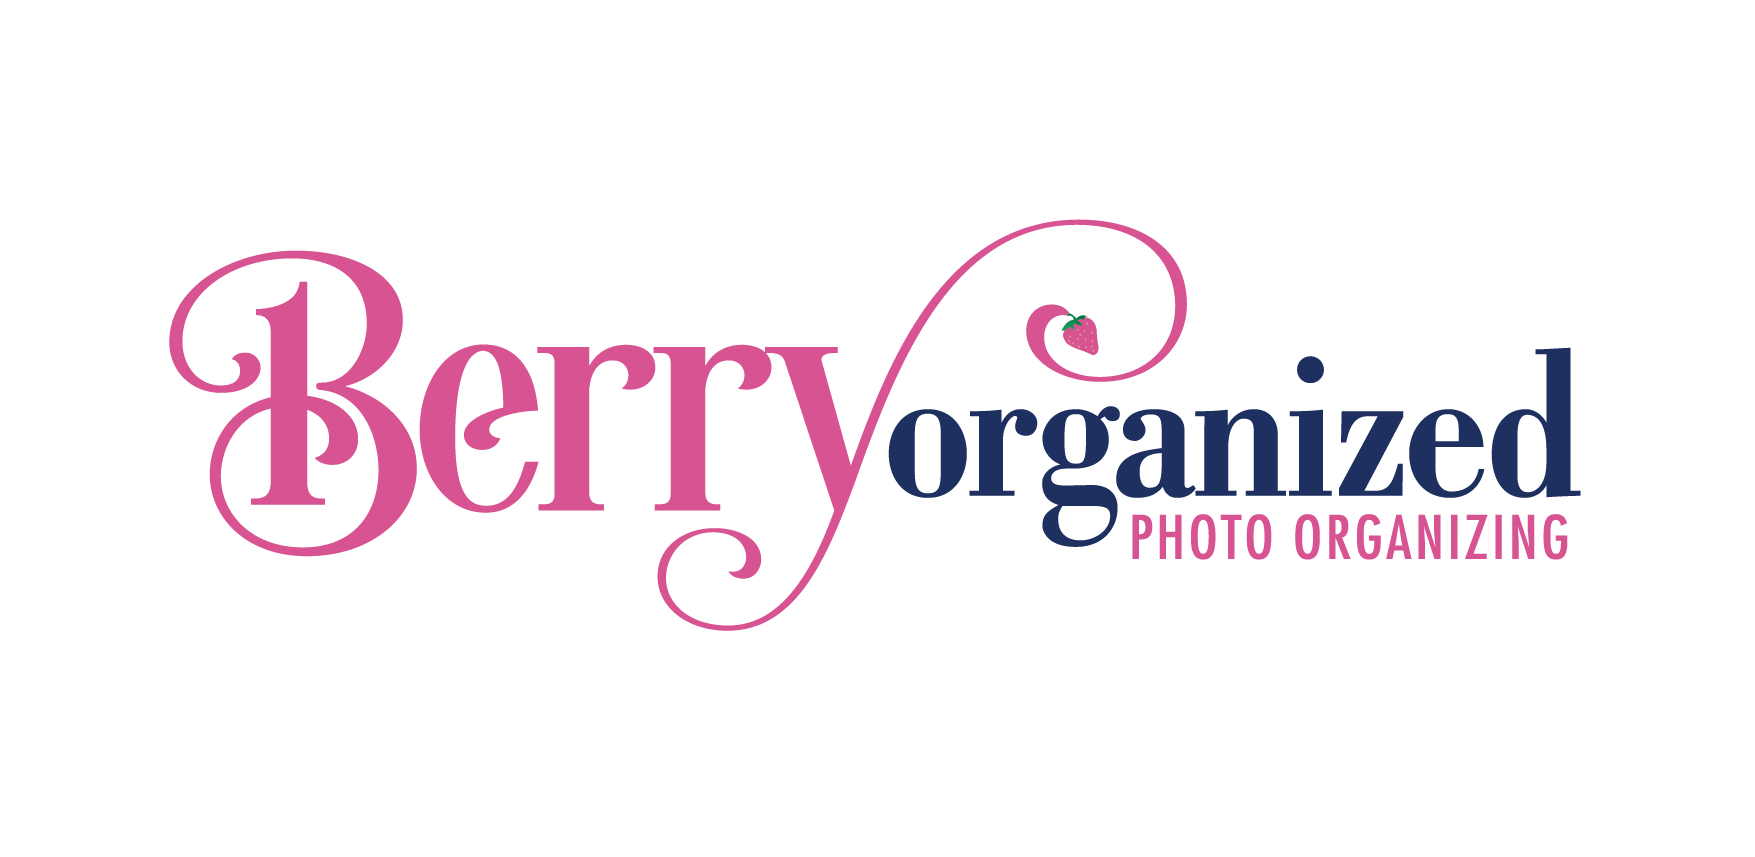 Berry_logo_final-01-300 dpi.png